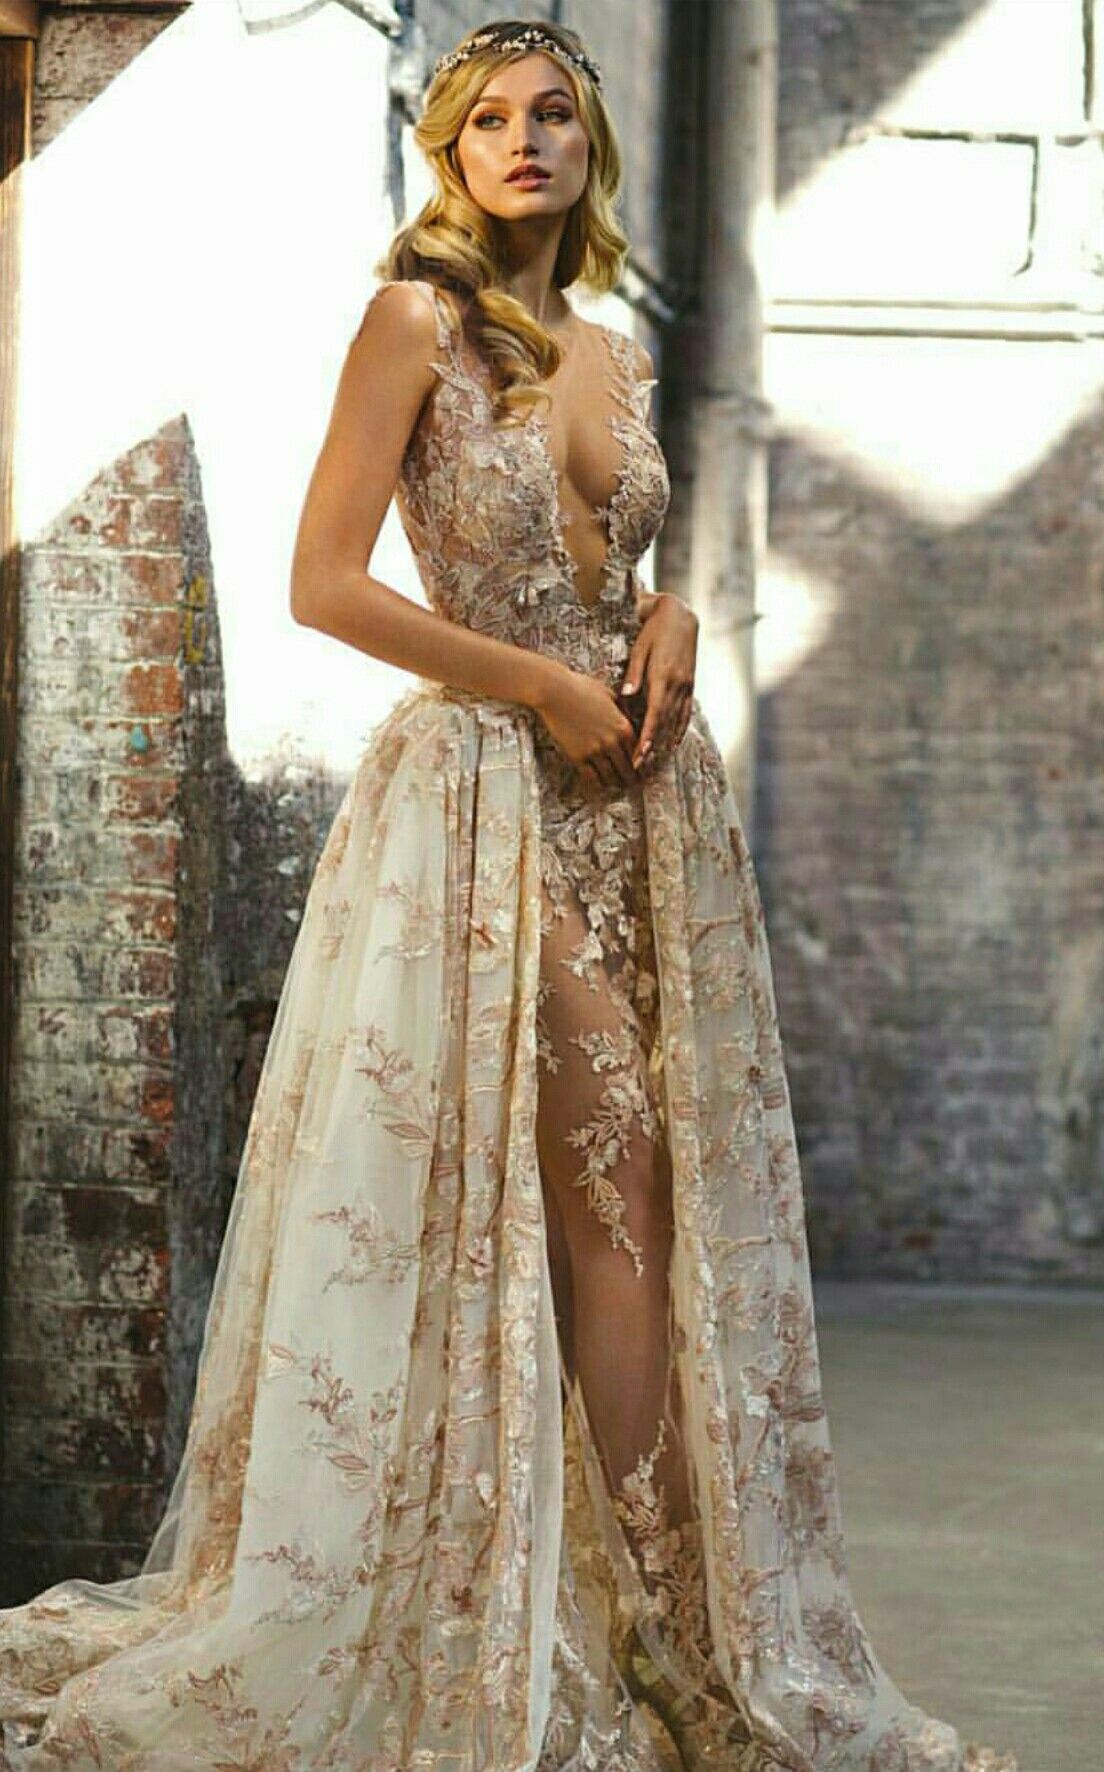 Pin by käthe lozädä on vestidos pinterest wedding dress dream